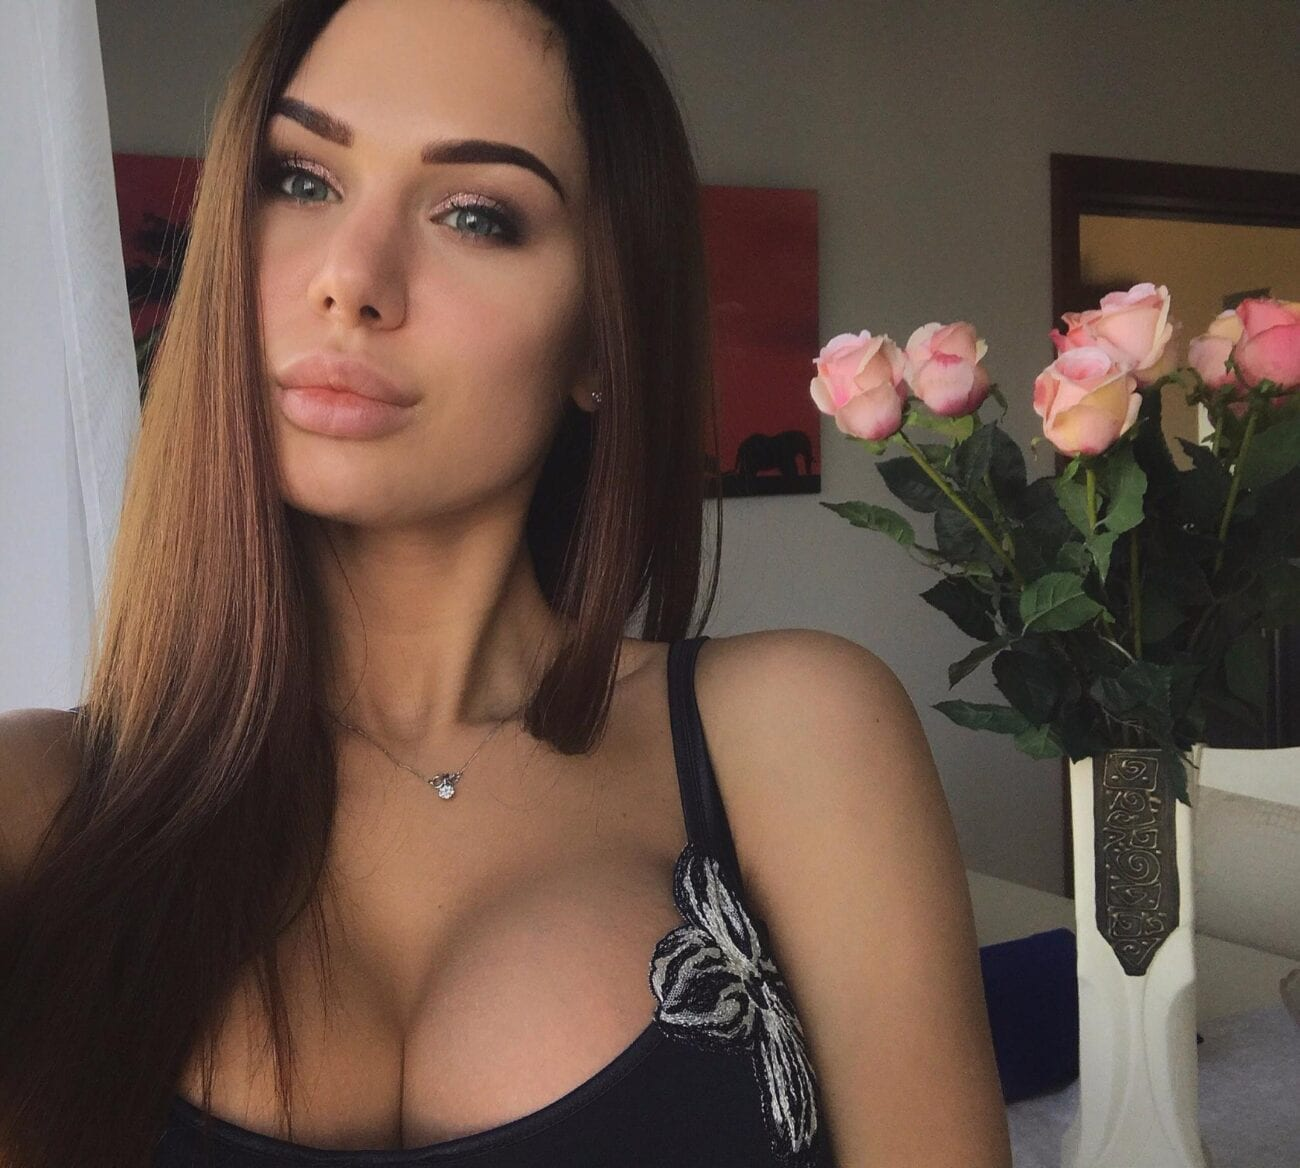 Fitness model Jenny Mosienko will be featured on the cover of Playboy Russia. Here's everything you need to know about her.